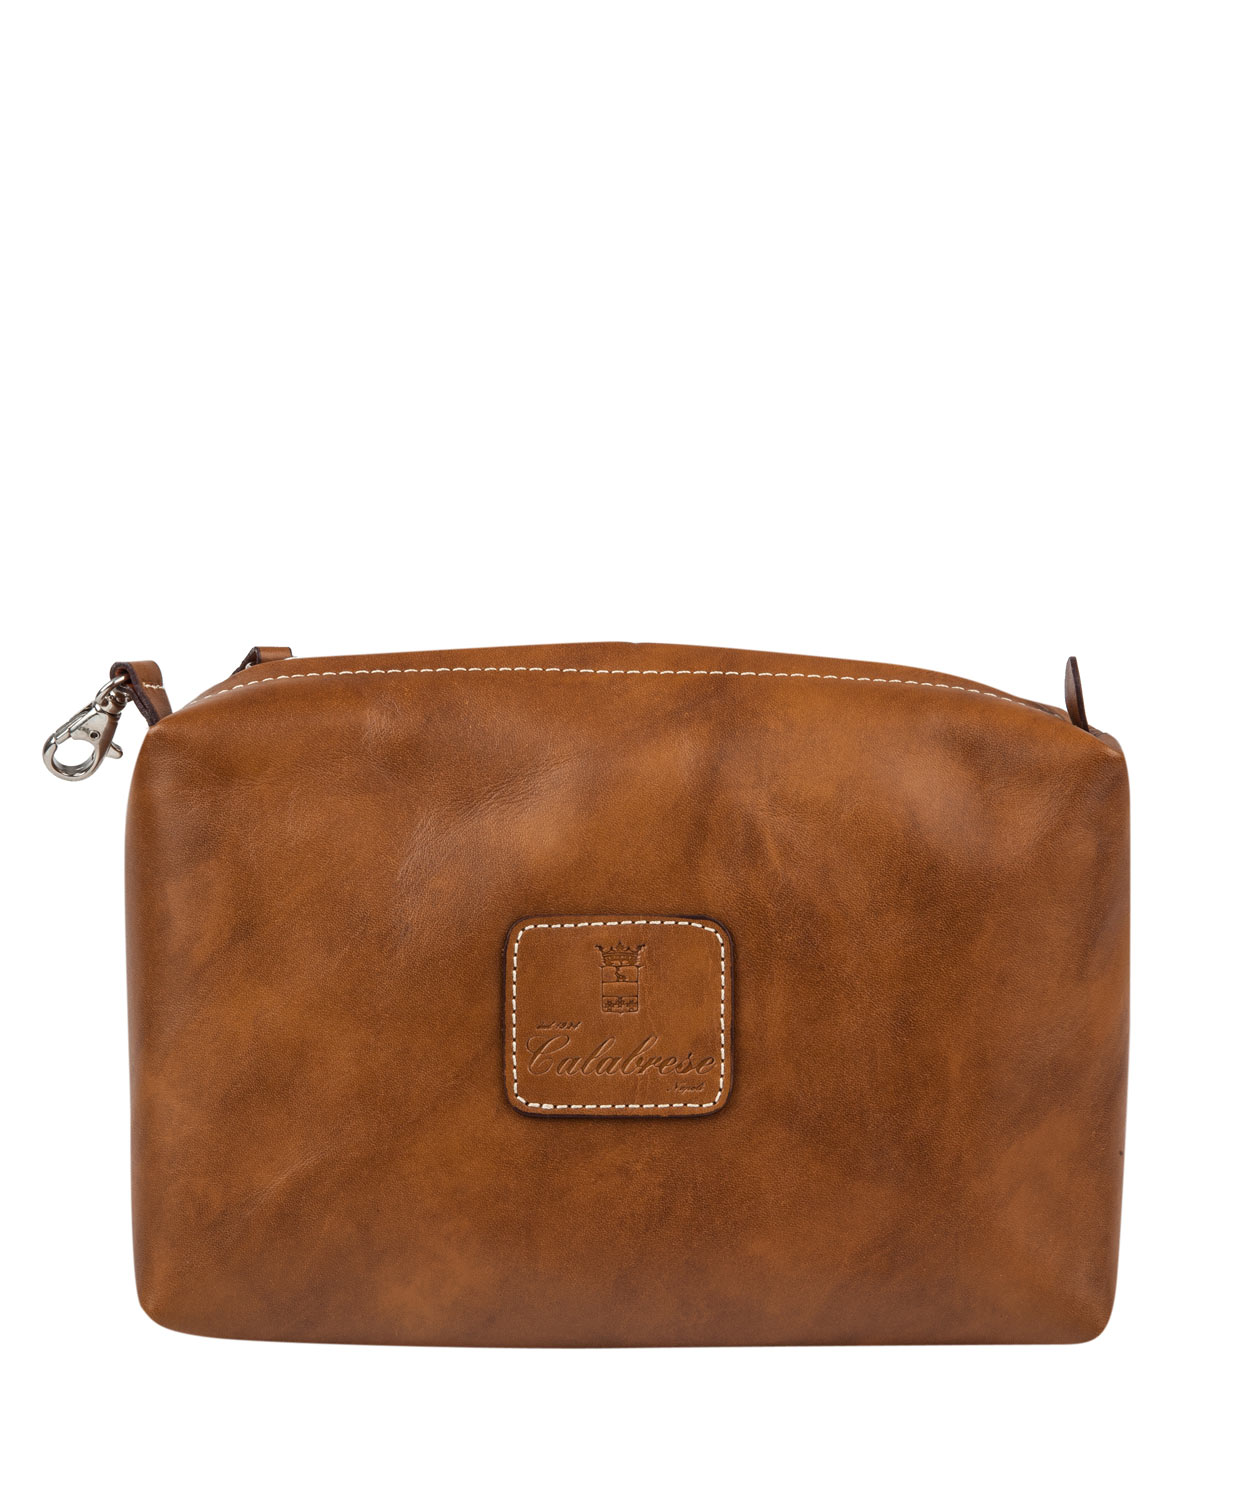 Lyst - Calabrese Bags Brown Gajola Medium Leather Wash Bag ...